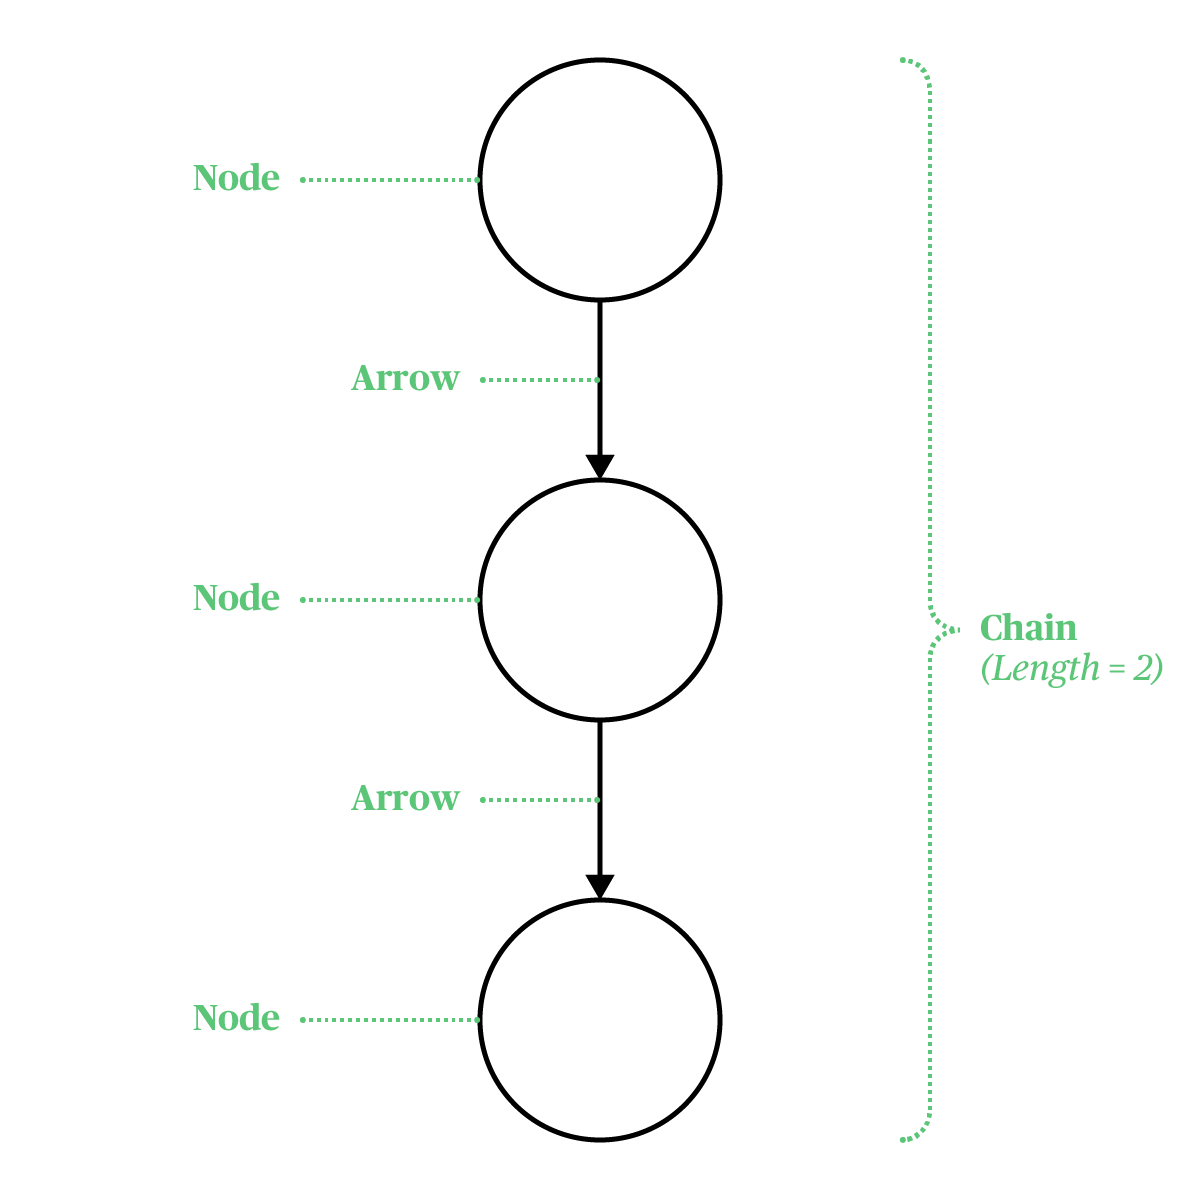 Nodes, Arrows and Chains in a BOVS Diagram